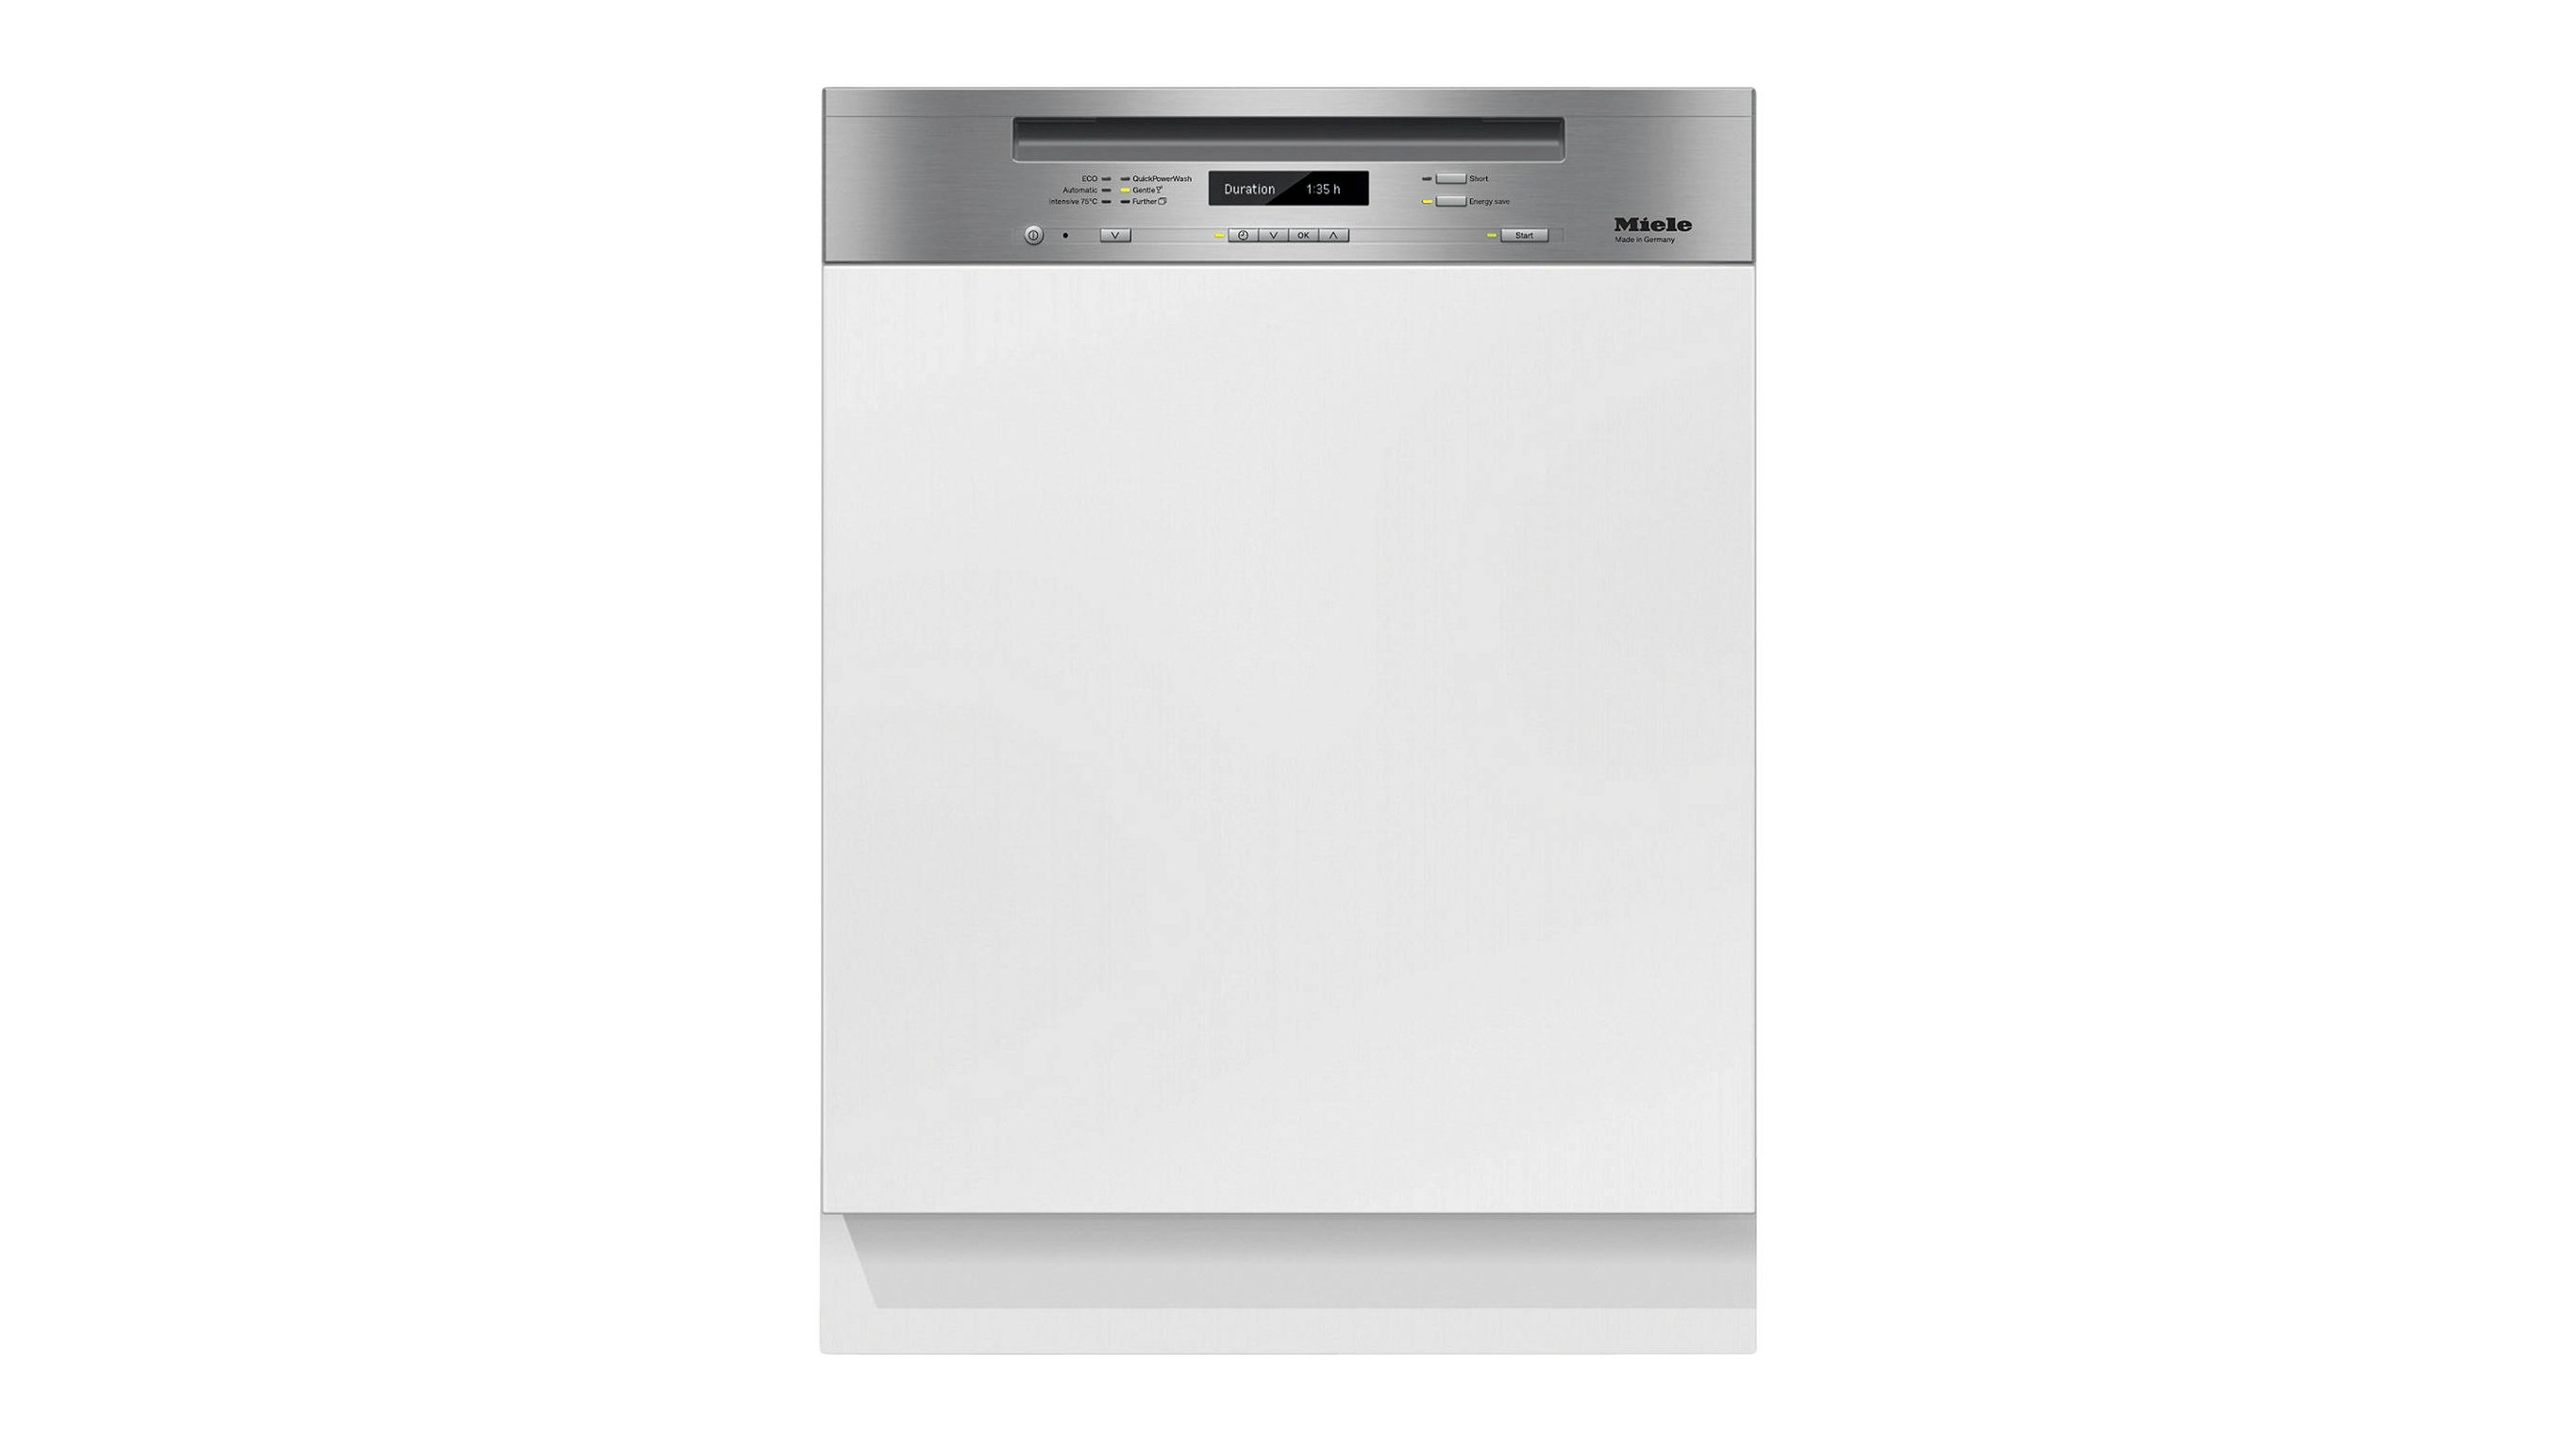 Miele Dishwasher Reviews >> Best Integrated Dishwasher 2019 The Best Dishwashers To Fit